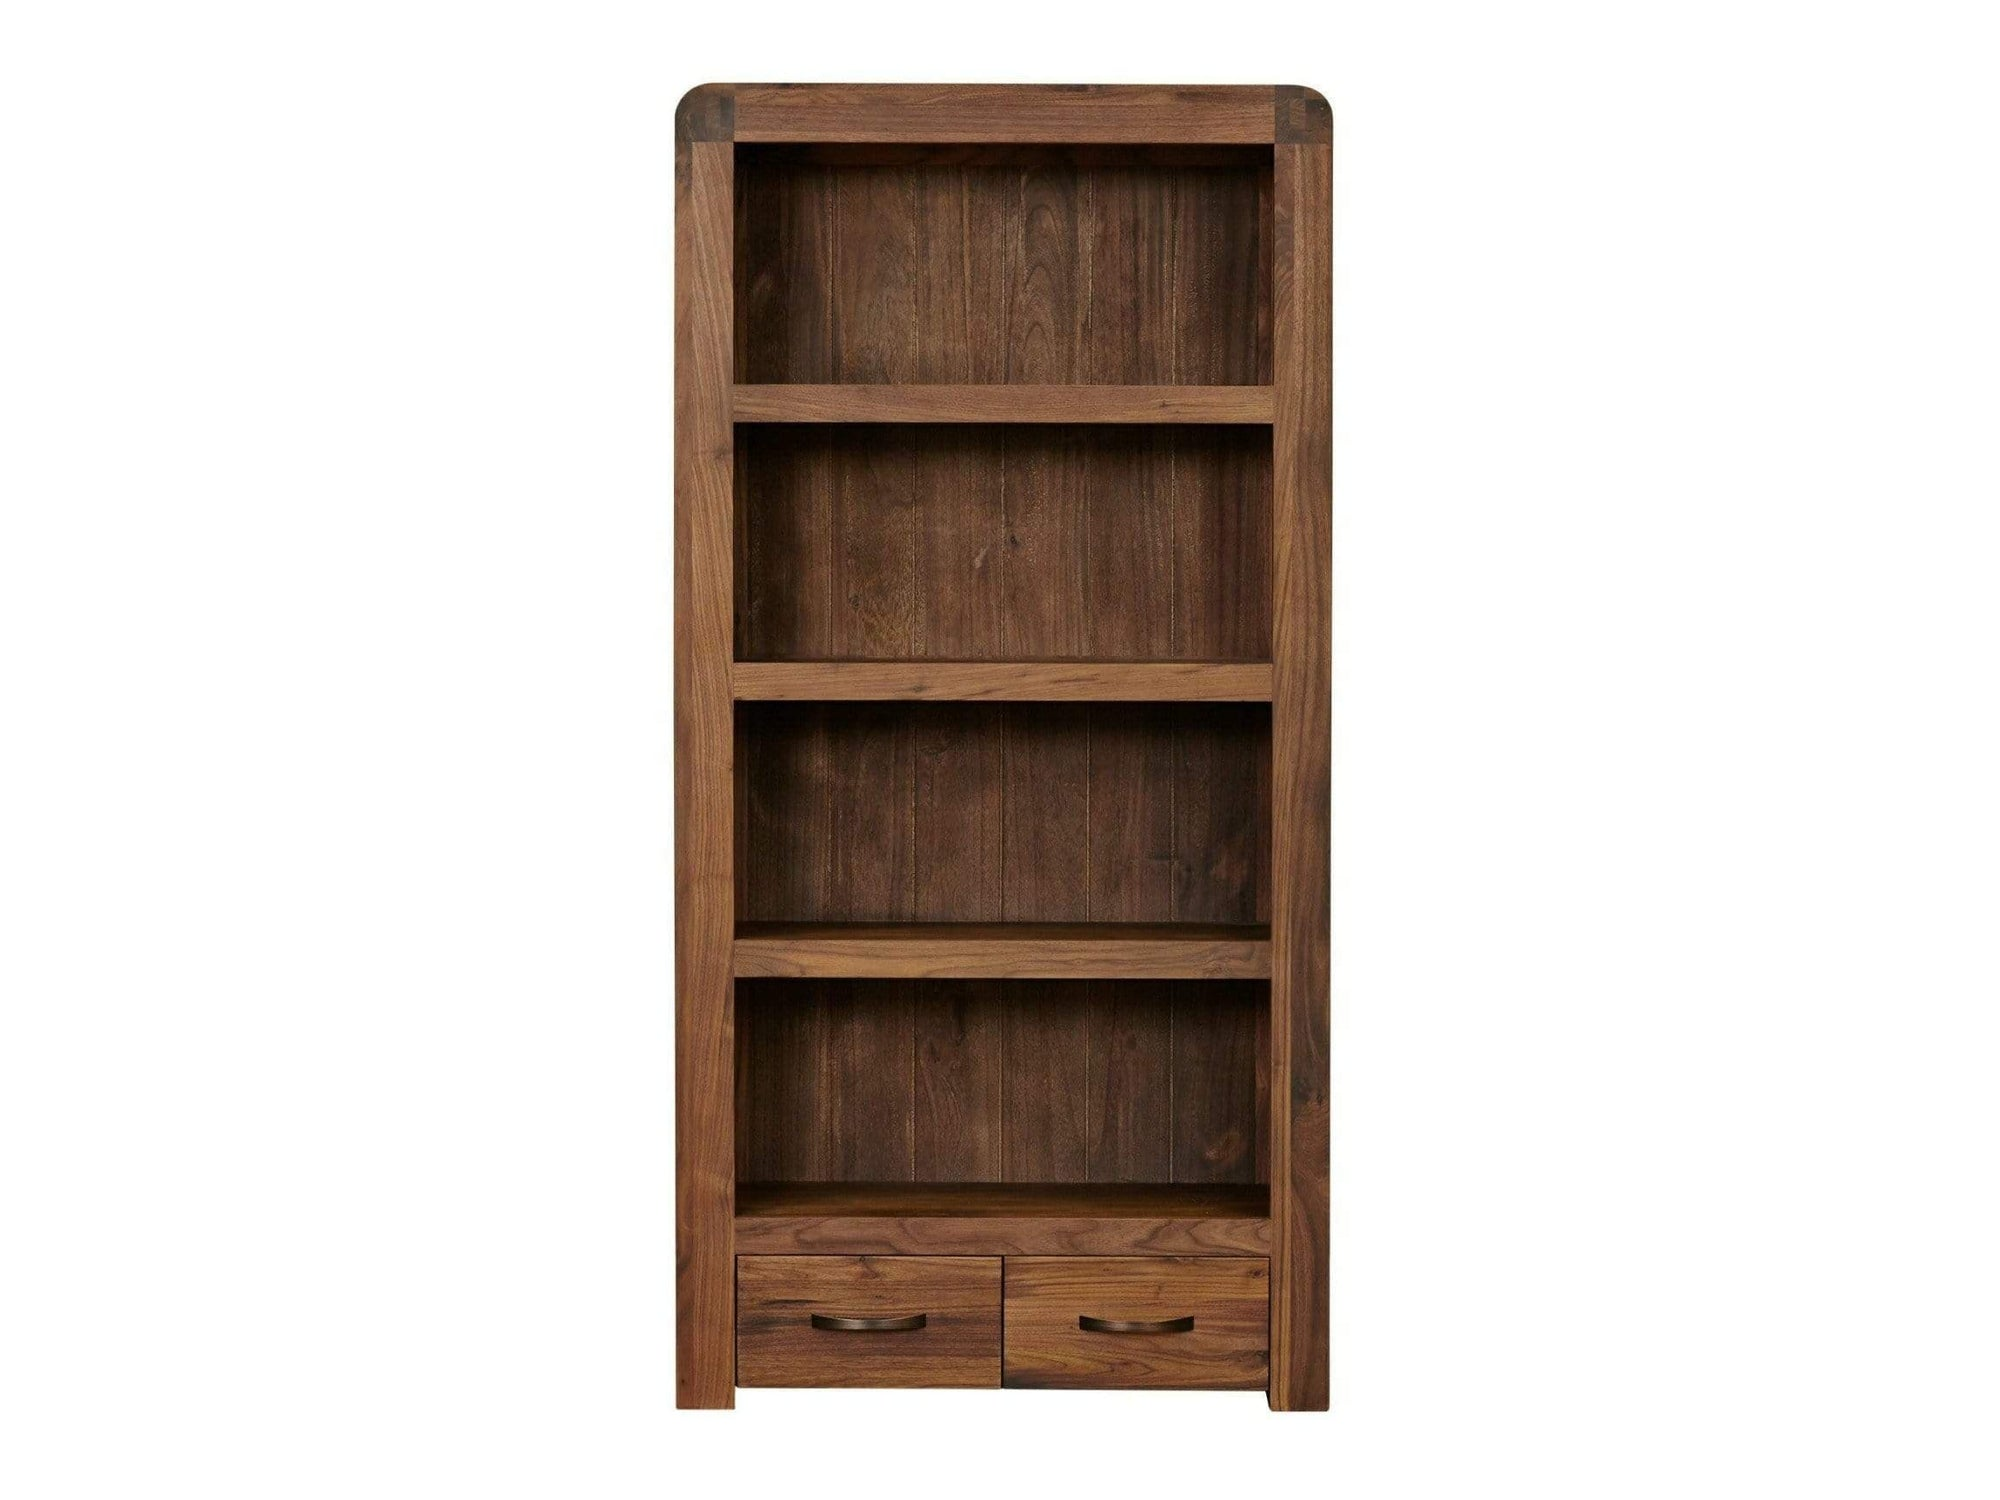 Large dark wood bookcase with four shelves and two drawers for storage at the base of the unit